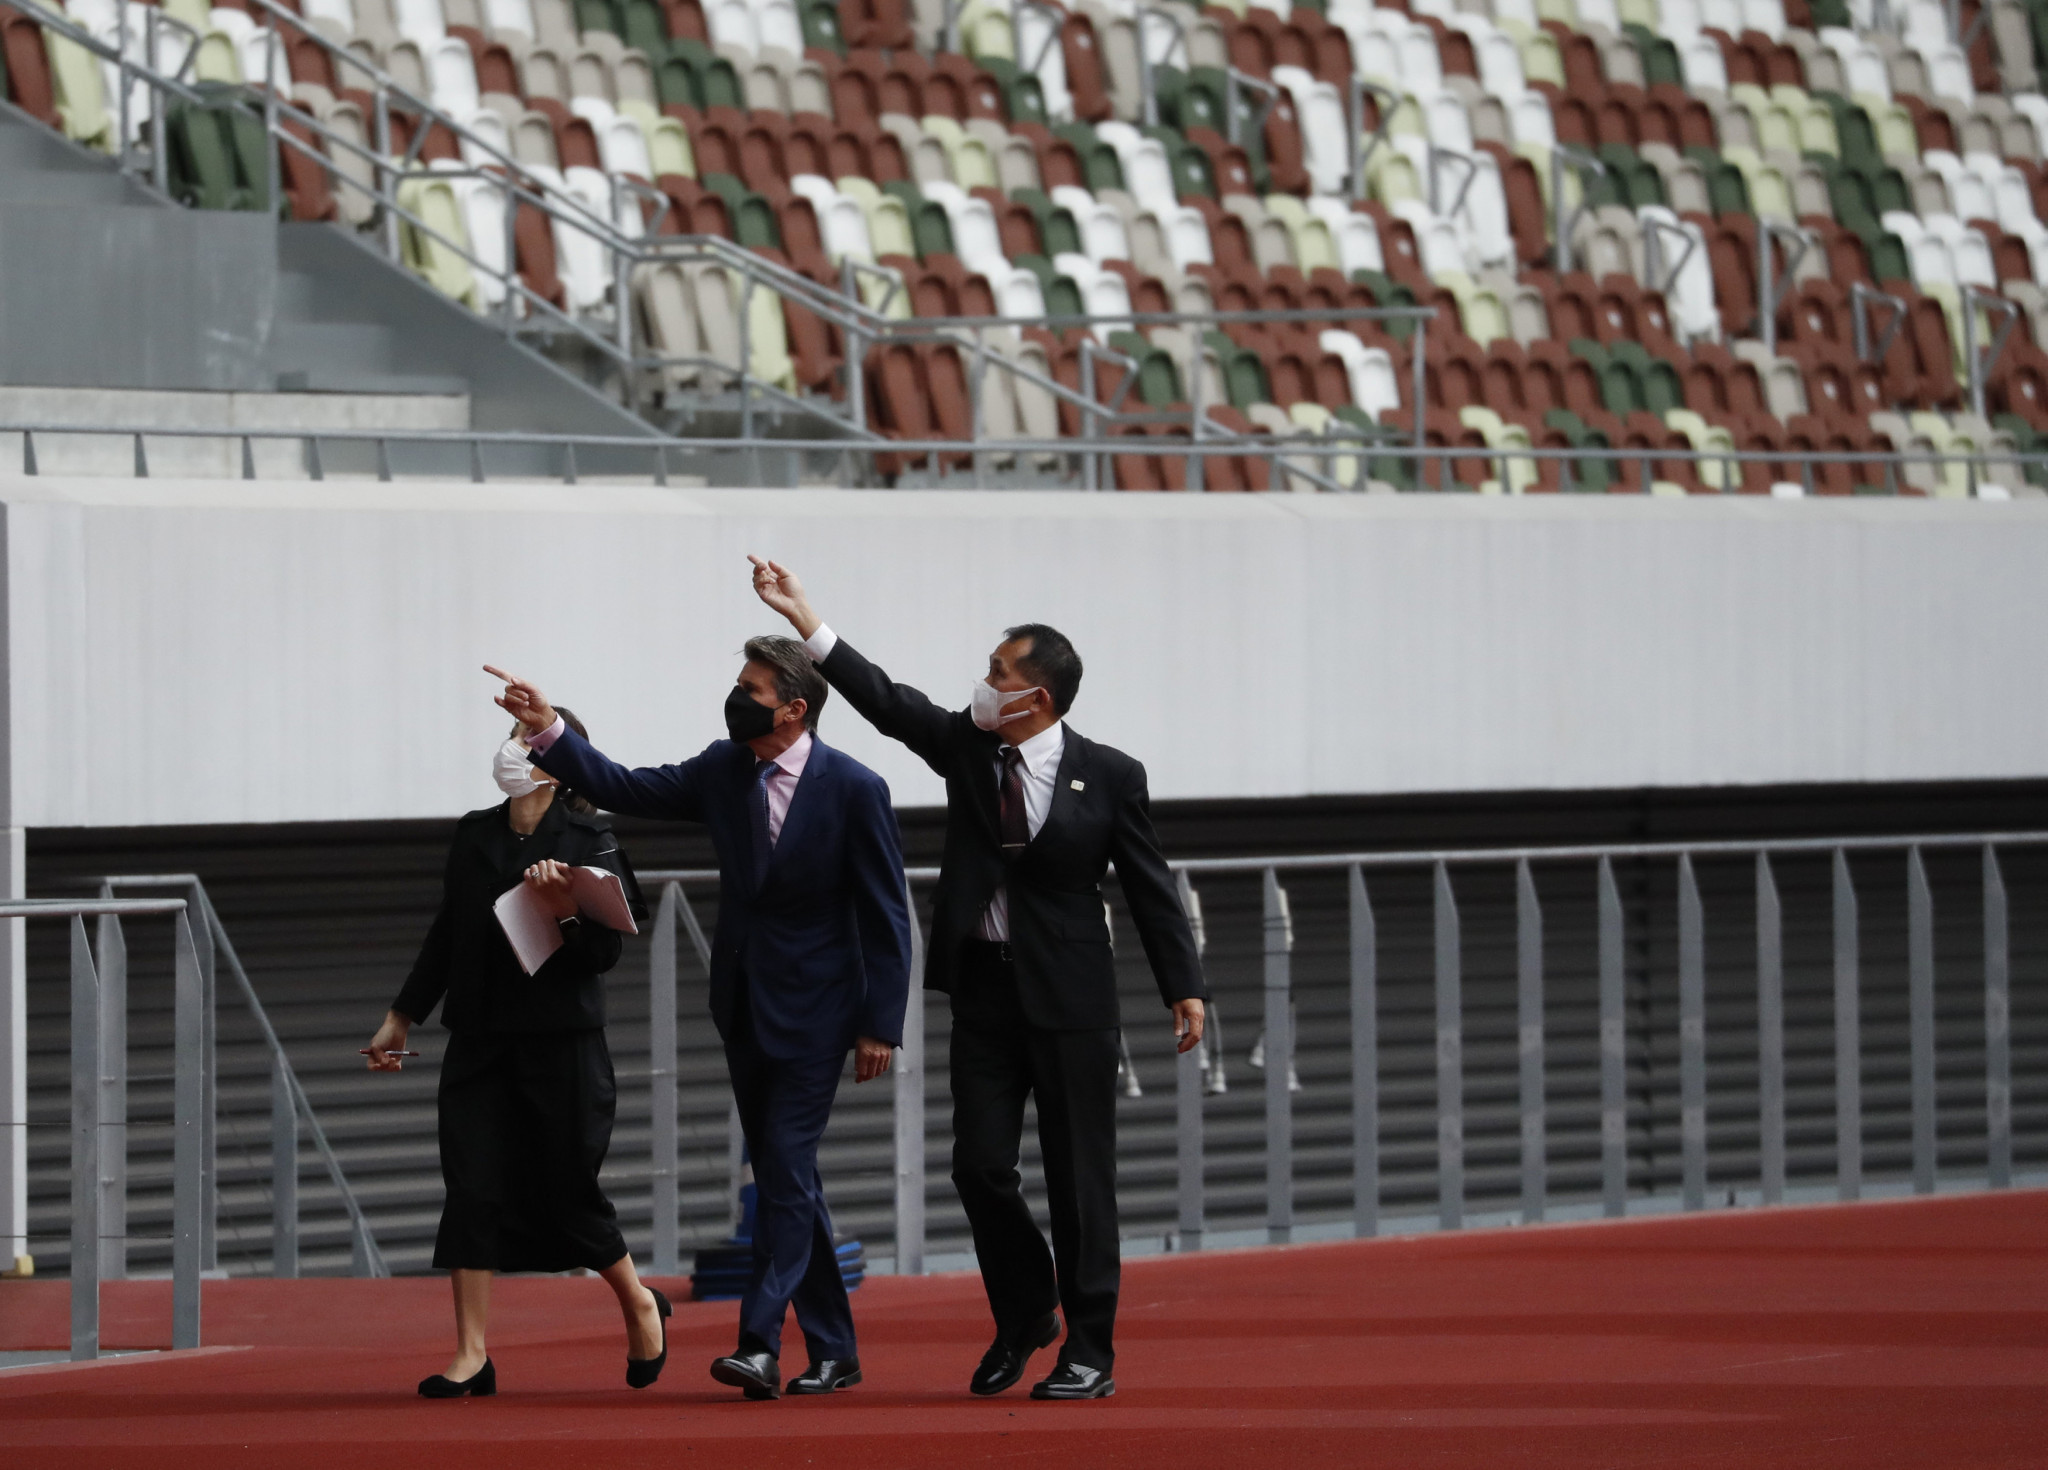 World Athletics President Sebastian Coe, centre, visited the Olympic Stadium in Tokyo last October, but foreign athletes may not be able to compete there in the Continental Tour meeting on May 9 that will also serve as the test event ©Getty Images